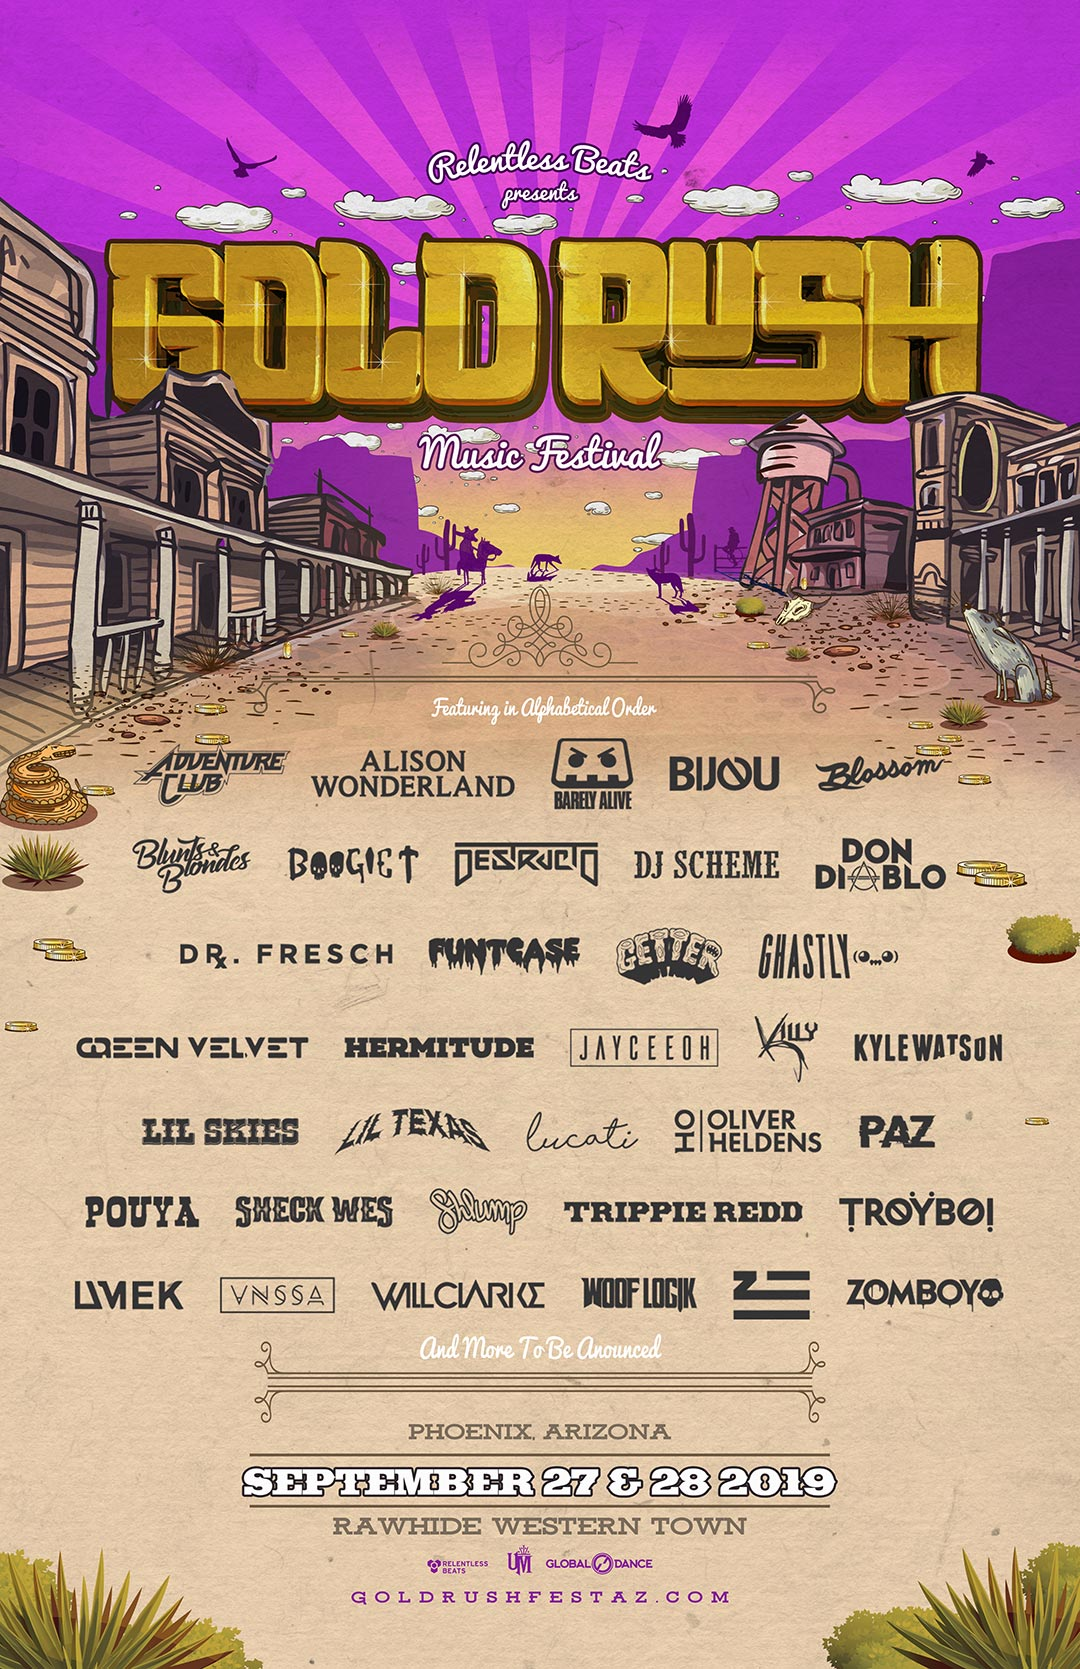 Goldrush 2019 Lineup Phase 2 - Goldrush Digs Deep On Second Round Lineup For Third Annual Festival, September 27 And 28, 2019